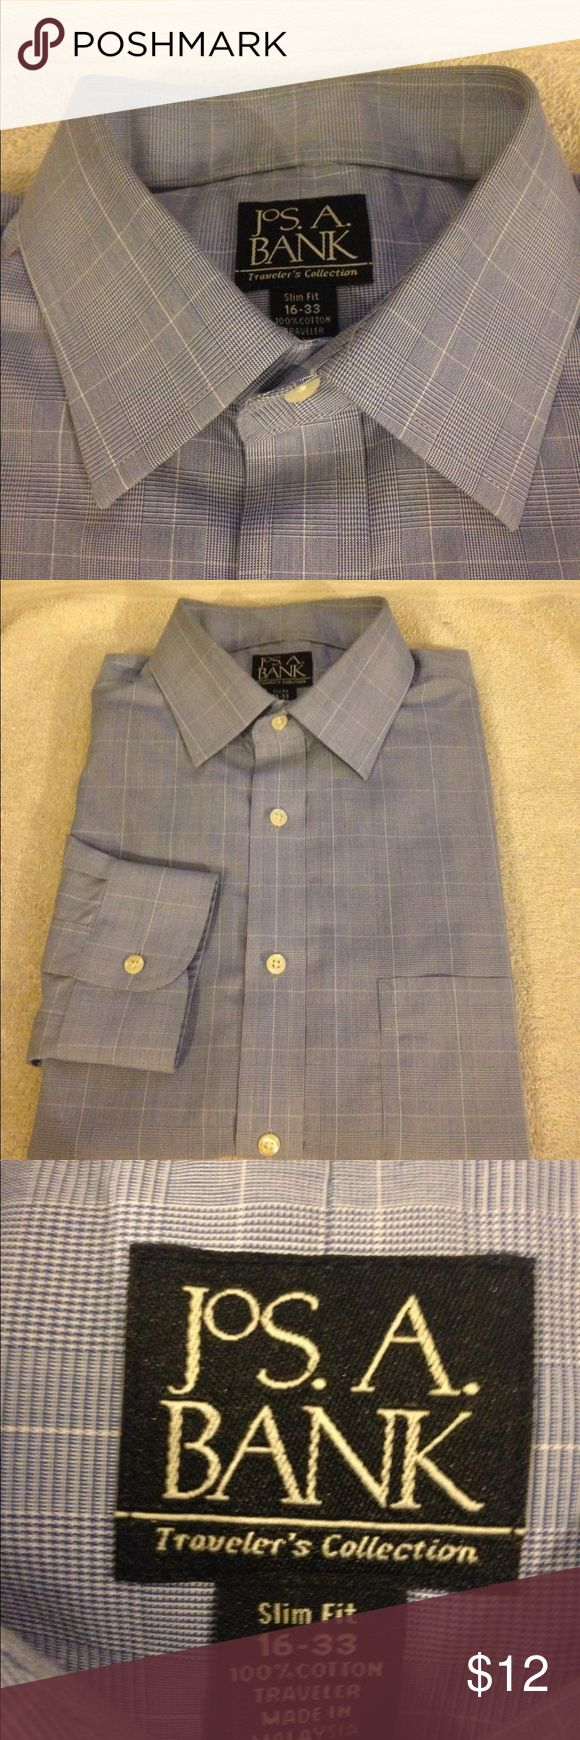 Jos A Bank Blue Glenn Plaid Slim Fit Shirt 16-33 Jos A Bank Blue and White Glenn Plaid Slim Fit Dress Shirt size 16-33! Great condition! Please make reasonable offers and bundle! Ask questions! :) Jos. A. Bank Shirts Dress Shirts